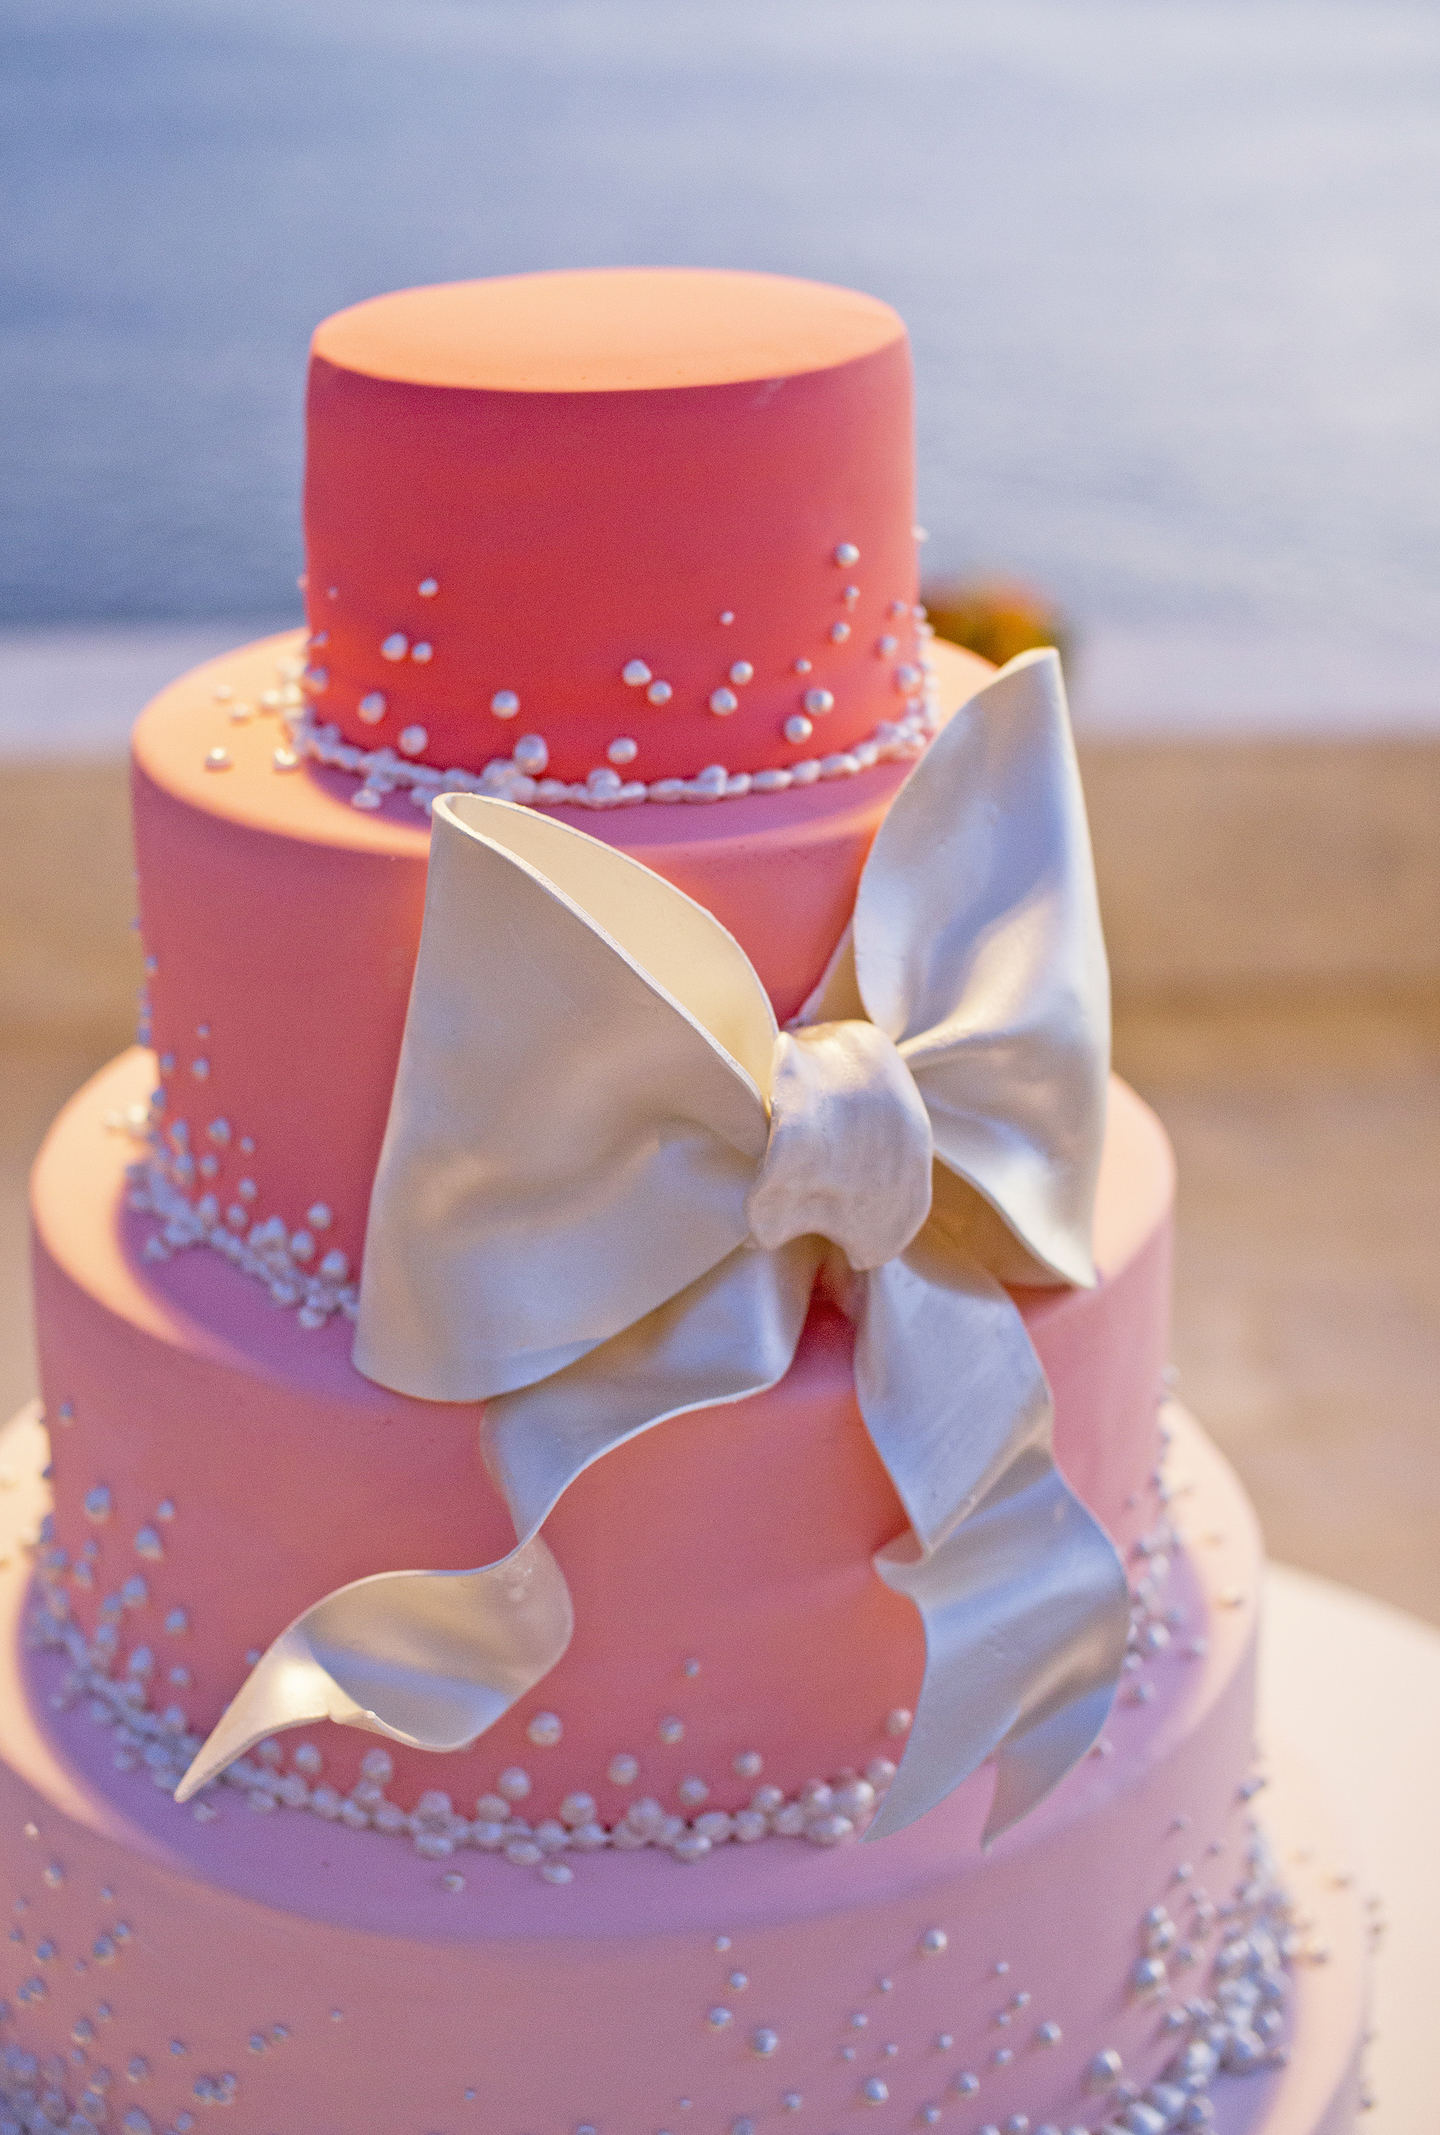 4 TIERED CORAL OMBRE WEDDING CAKE WITH PEARL BOW - Copy